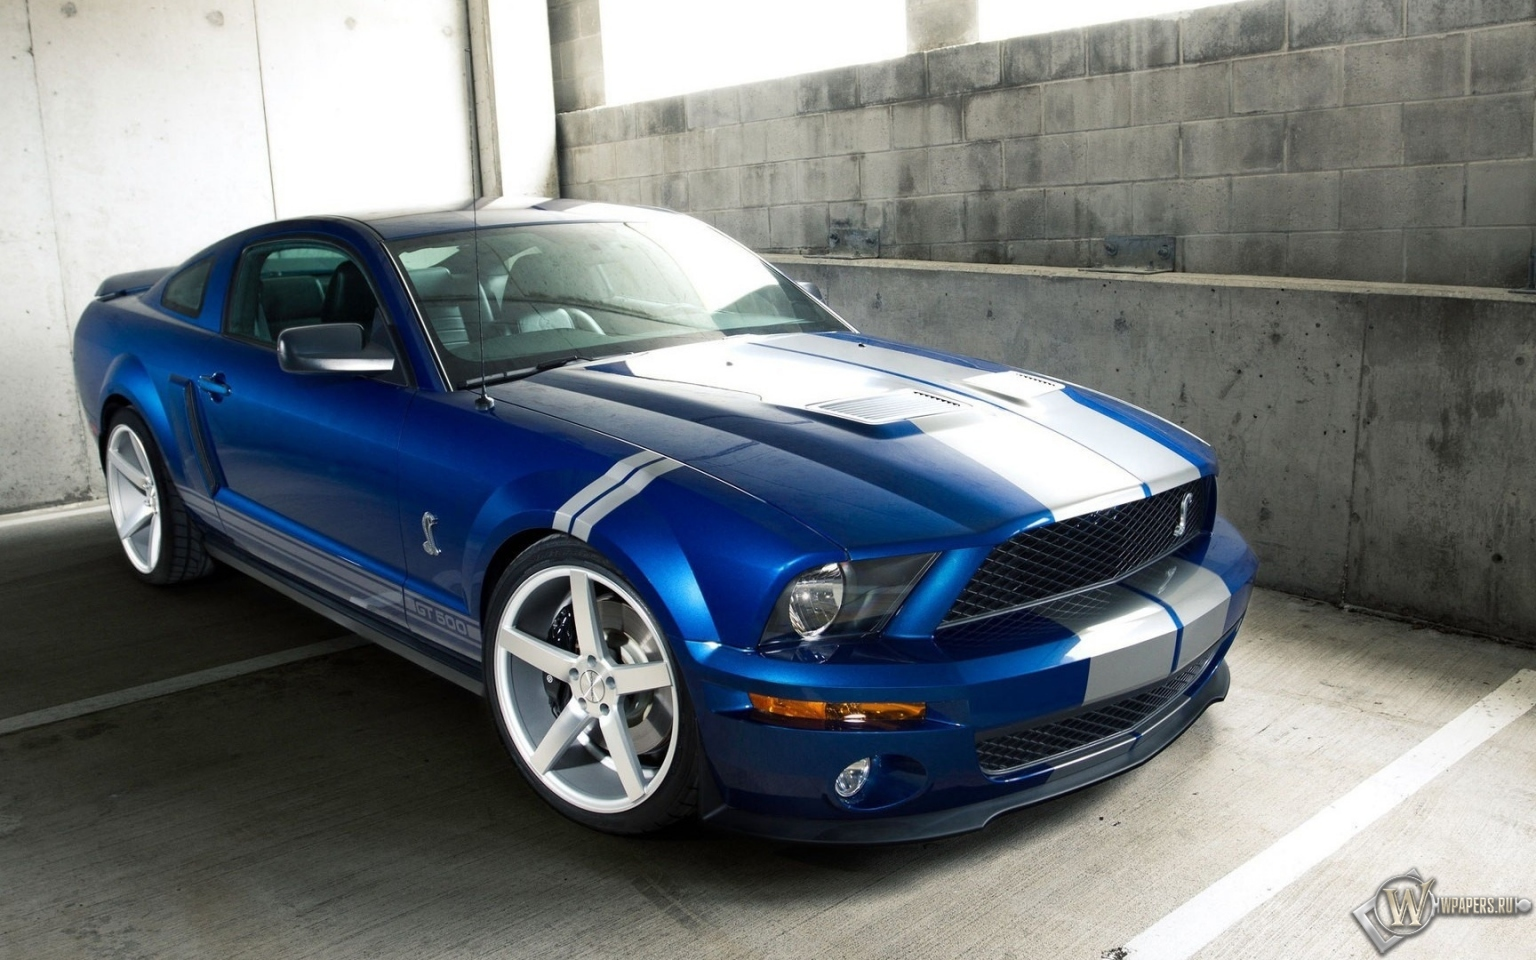 Ford Shelby GT 500 1536x960